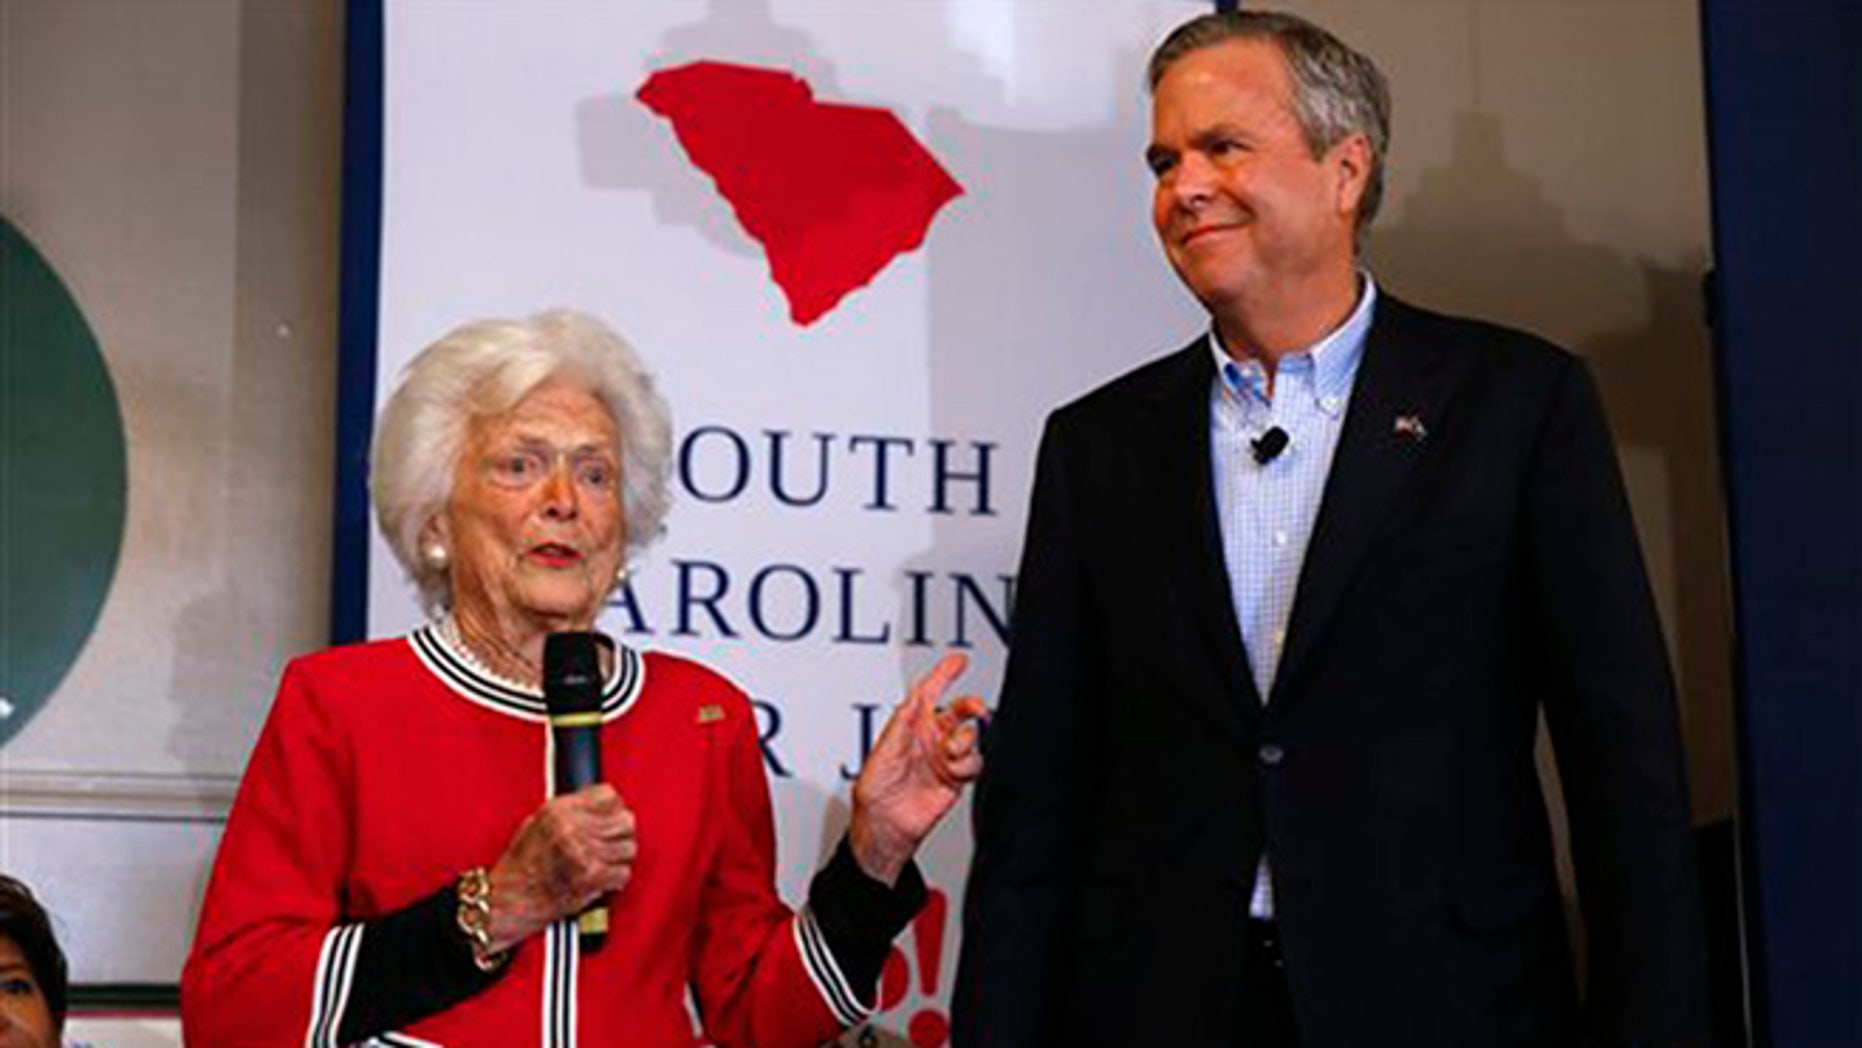 Republican presidential candidate, former Florida Gov. Jeb Bush, listens as his mother, former first lady Barbara speak during a campaign stop at Wade's Restaurant, Friday, Feb. 19, 2016 in Spartanburg, S.C. (AP Photo/Paul Sancya)